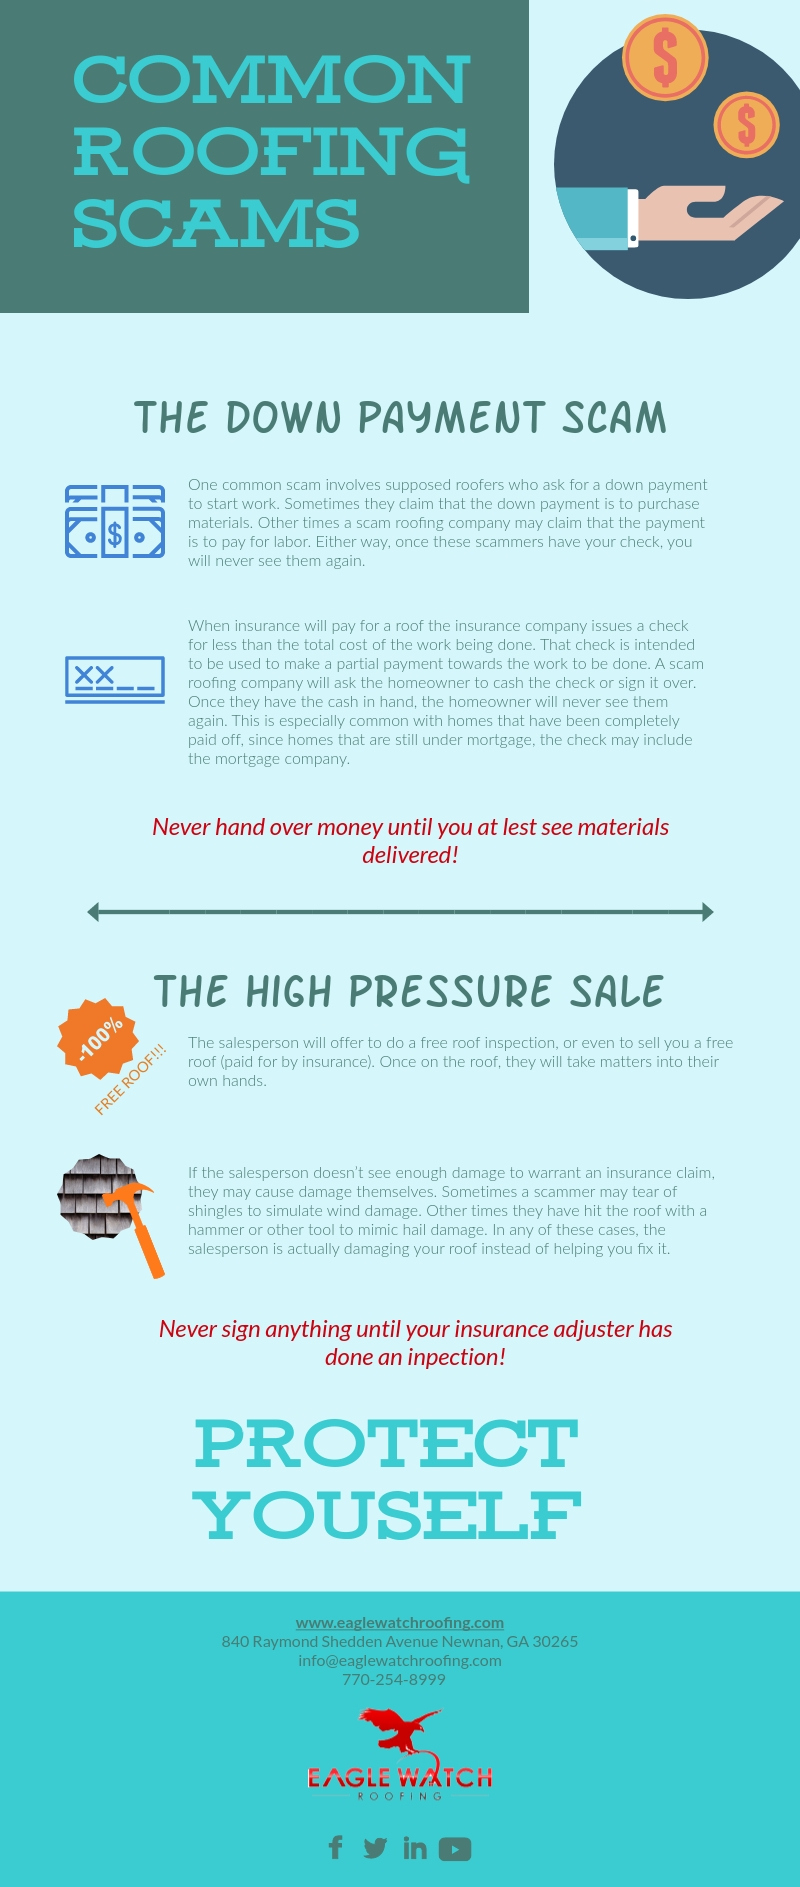 Avoid These Common Roofing Scams [infographic]